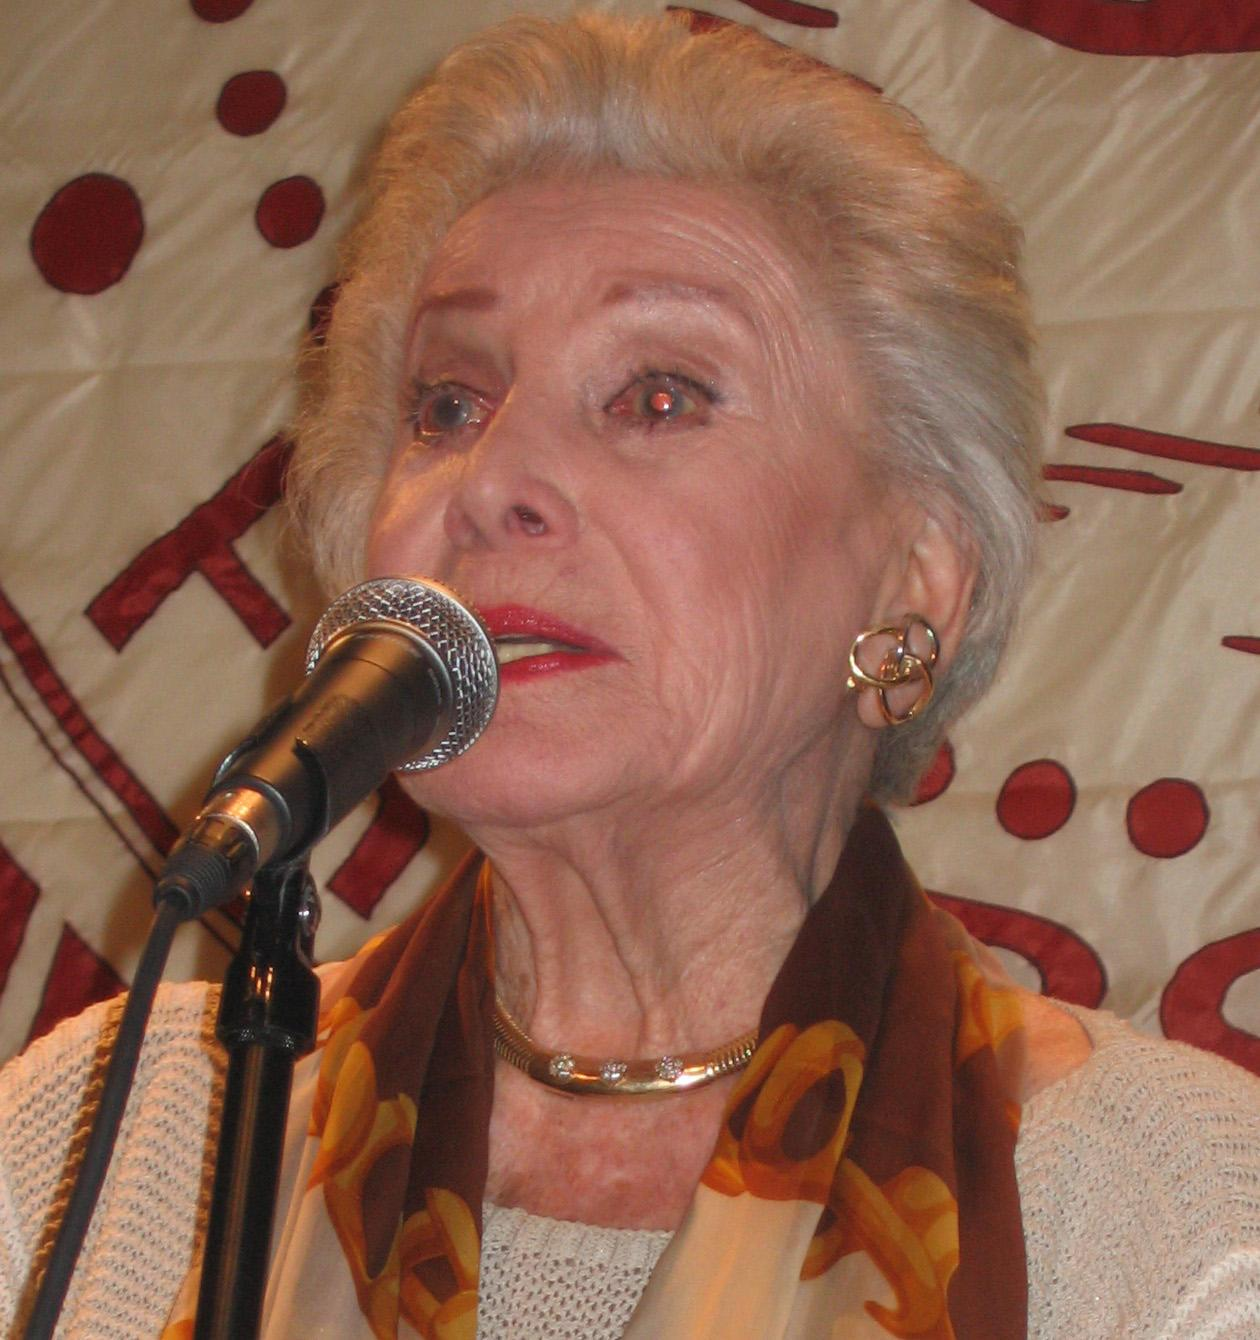 Jean Caroll, speaking at the Friar's Club in NYC, November 2006 - cropped